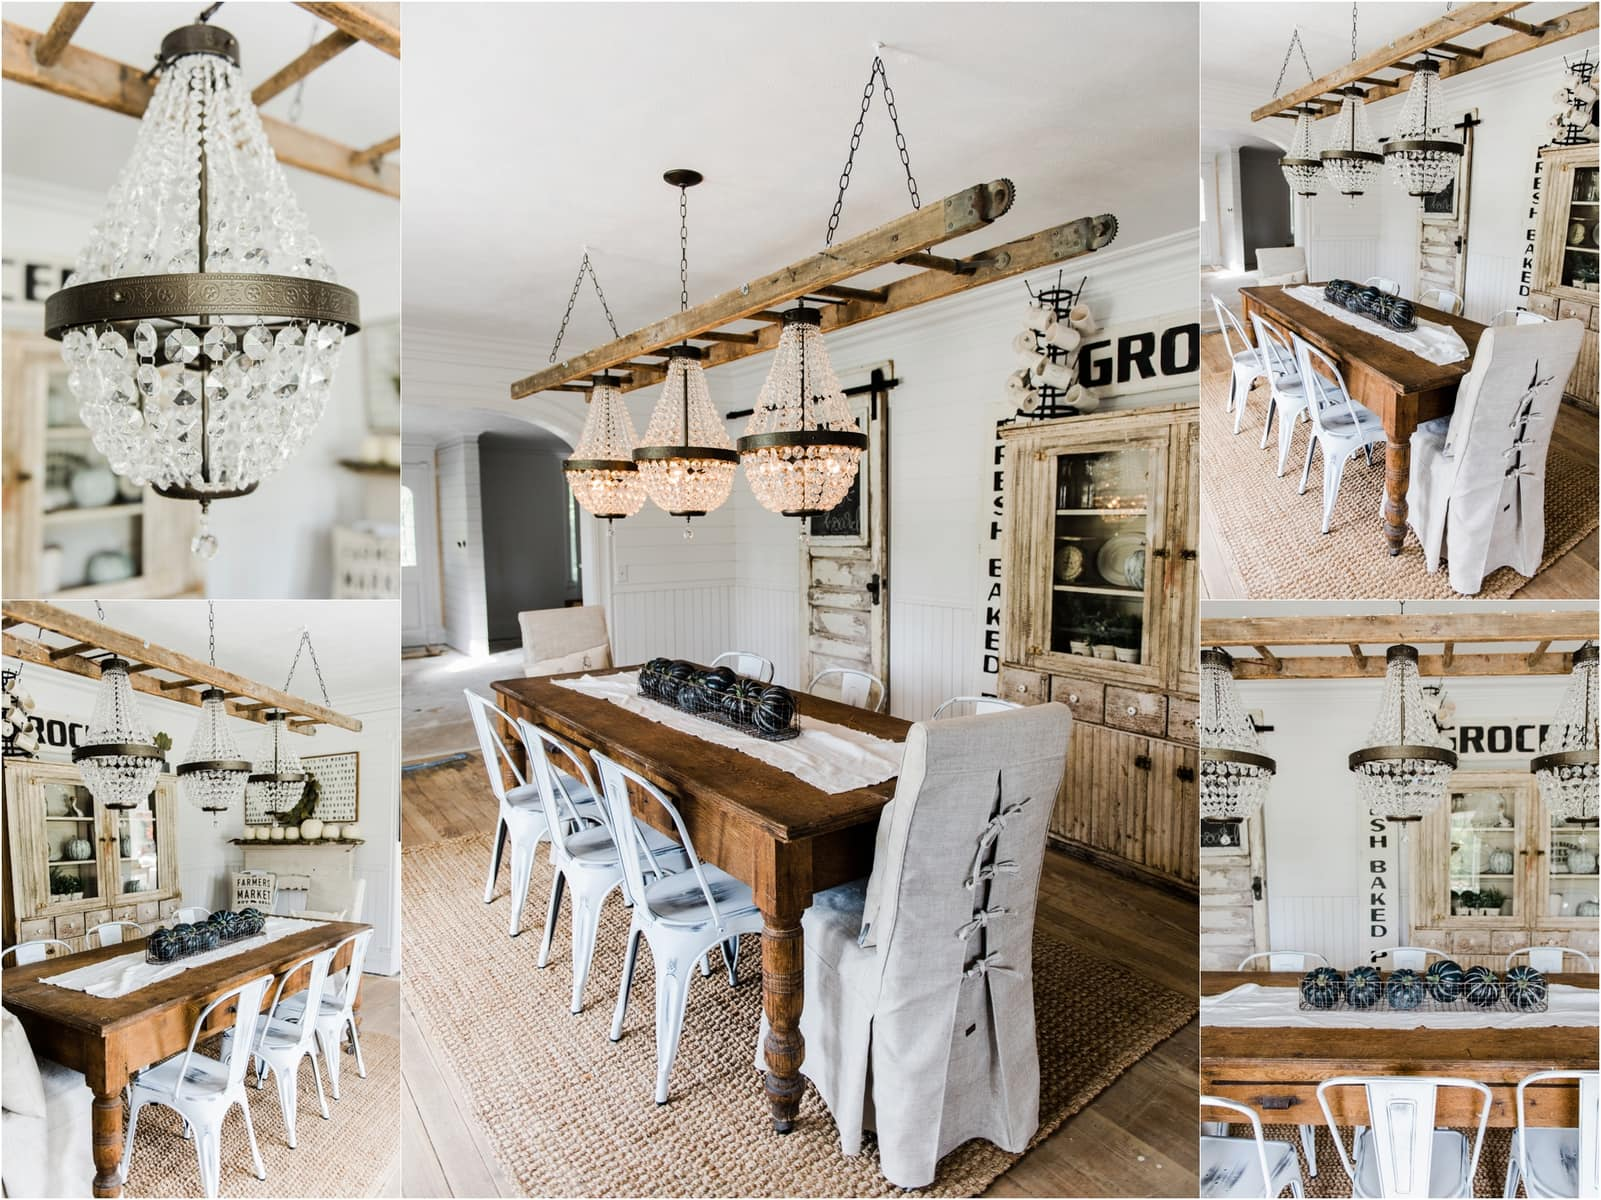 Pottery Barn Chandeliers at Home and Interior Design Ideas